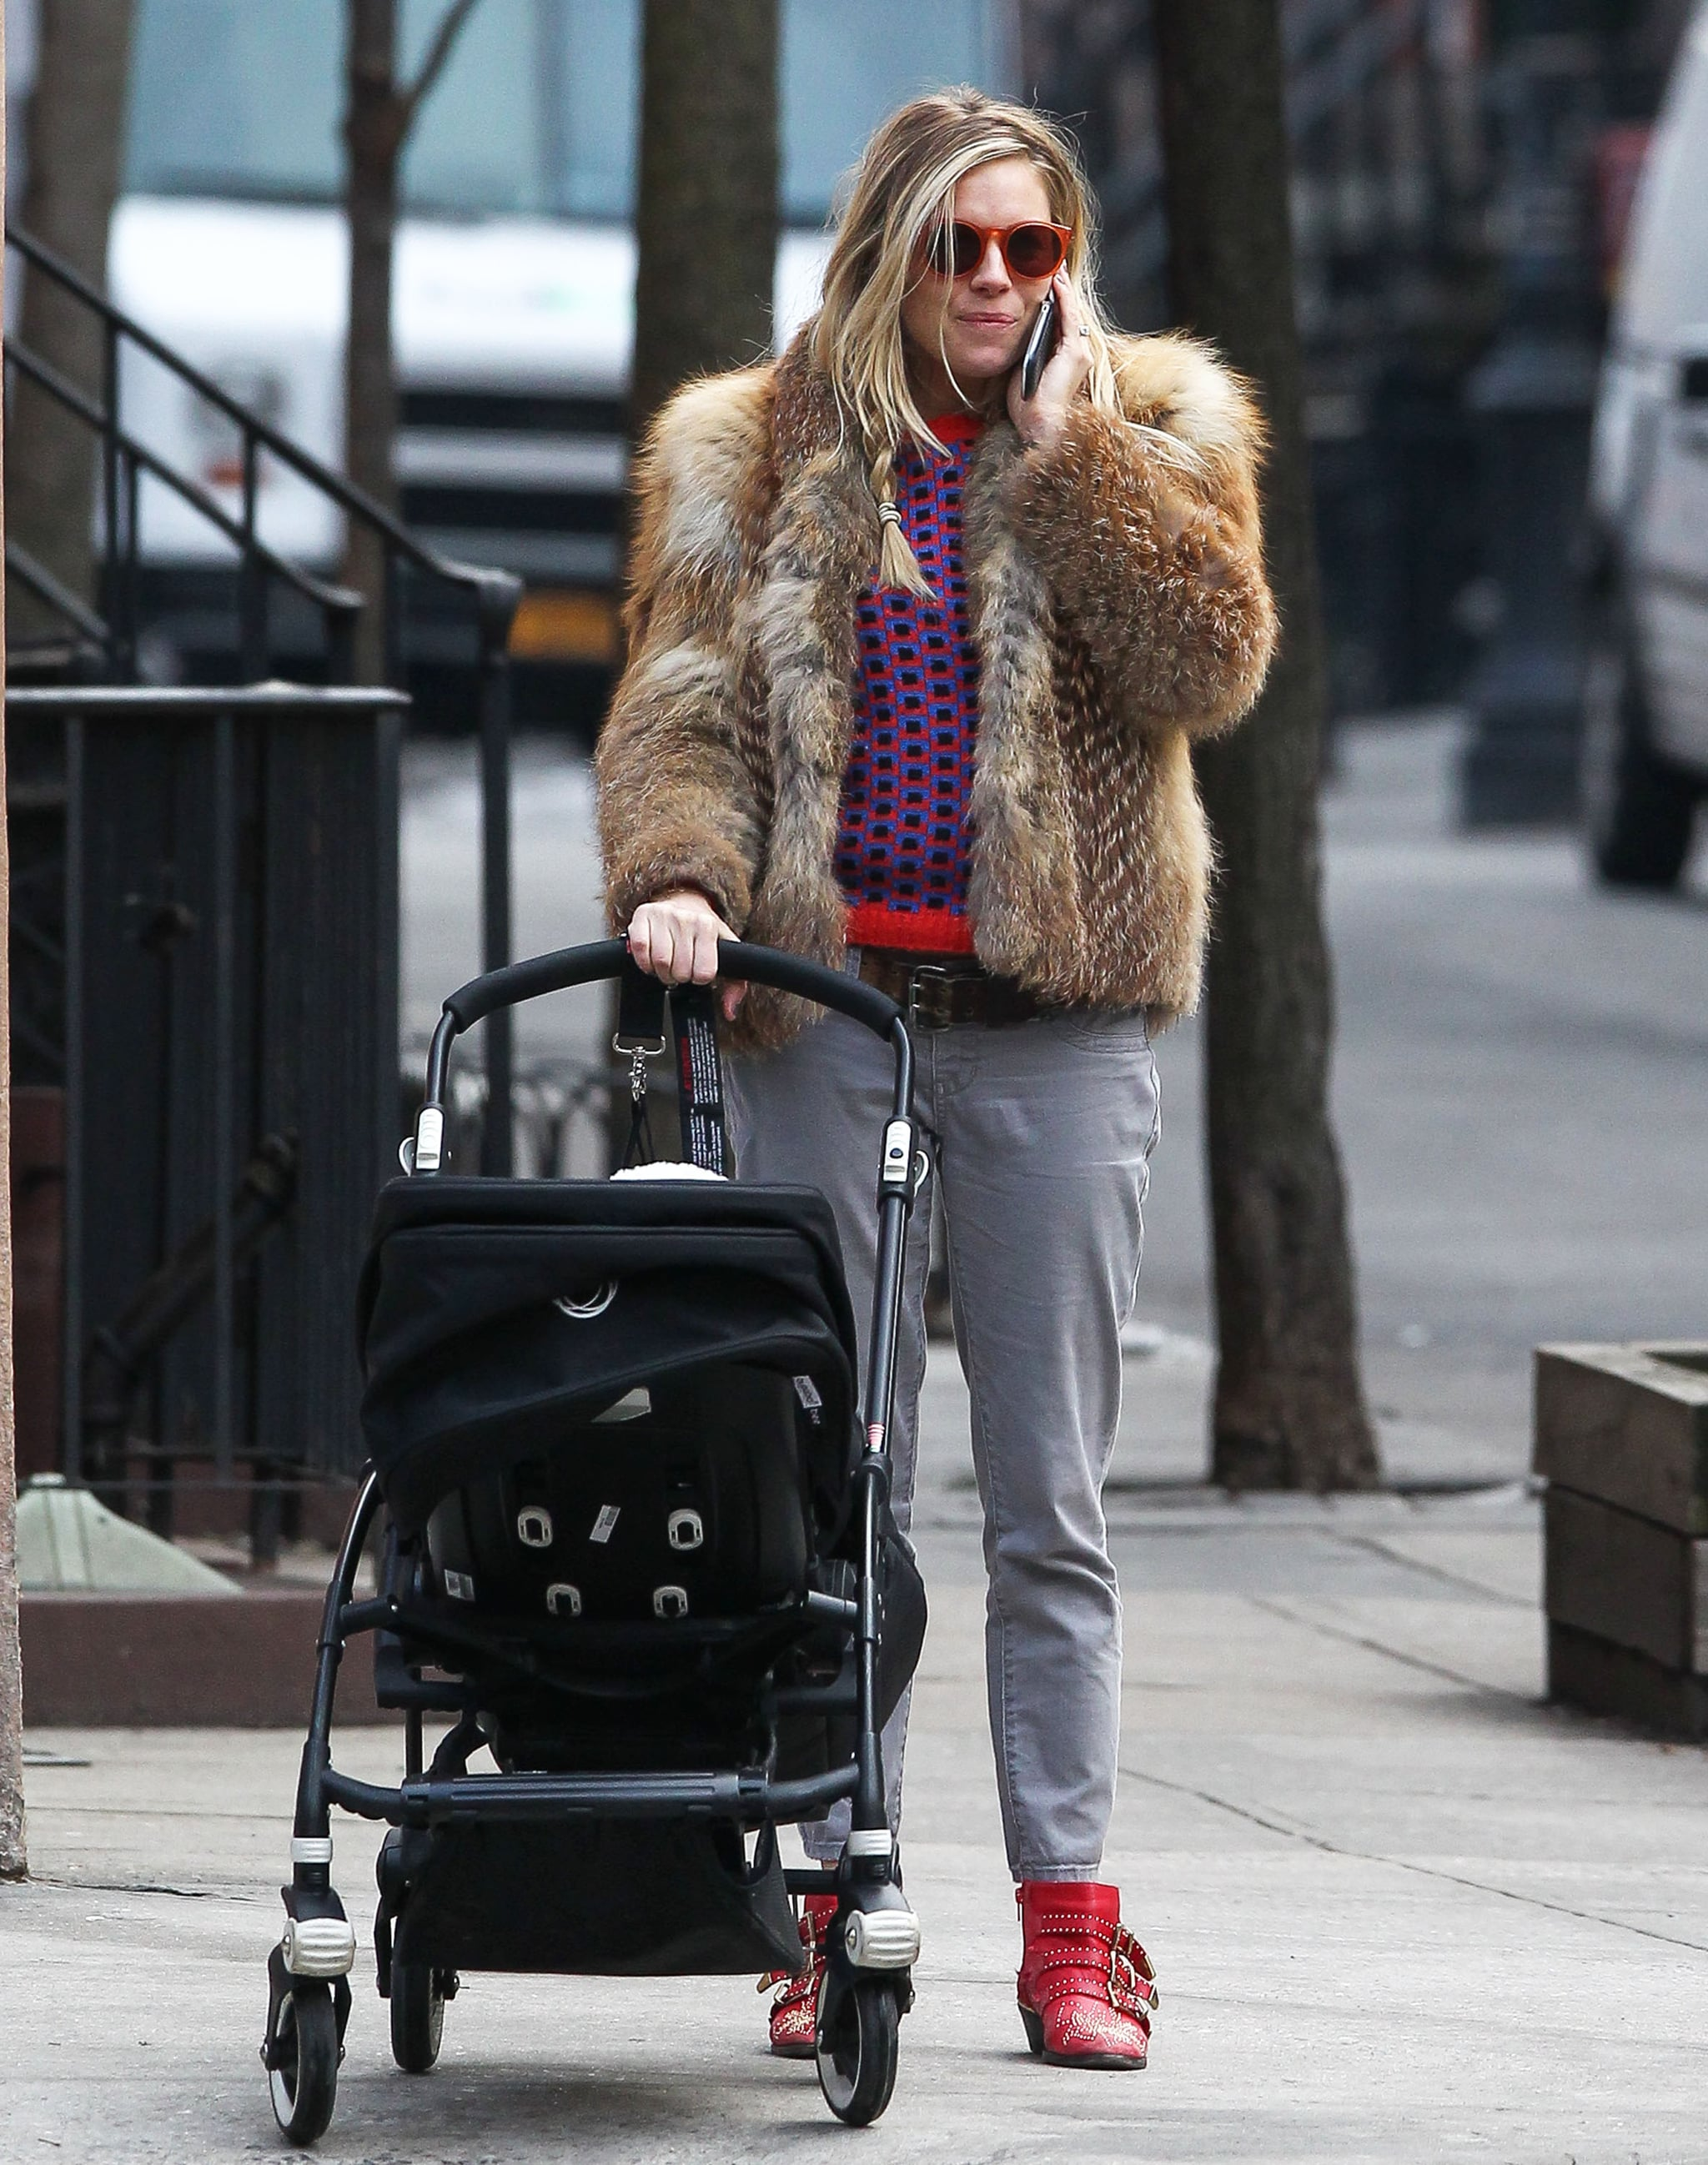 Sienna Miller donned bright red shoes in NYC.